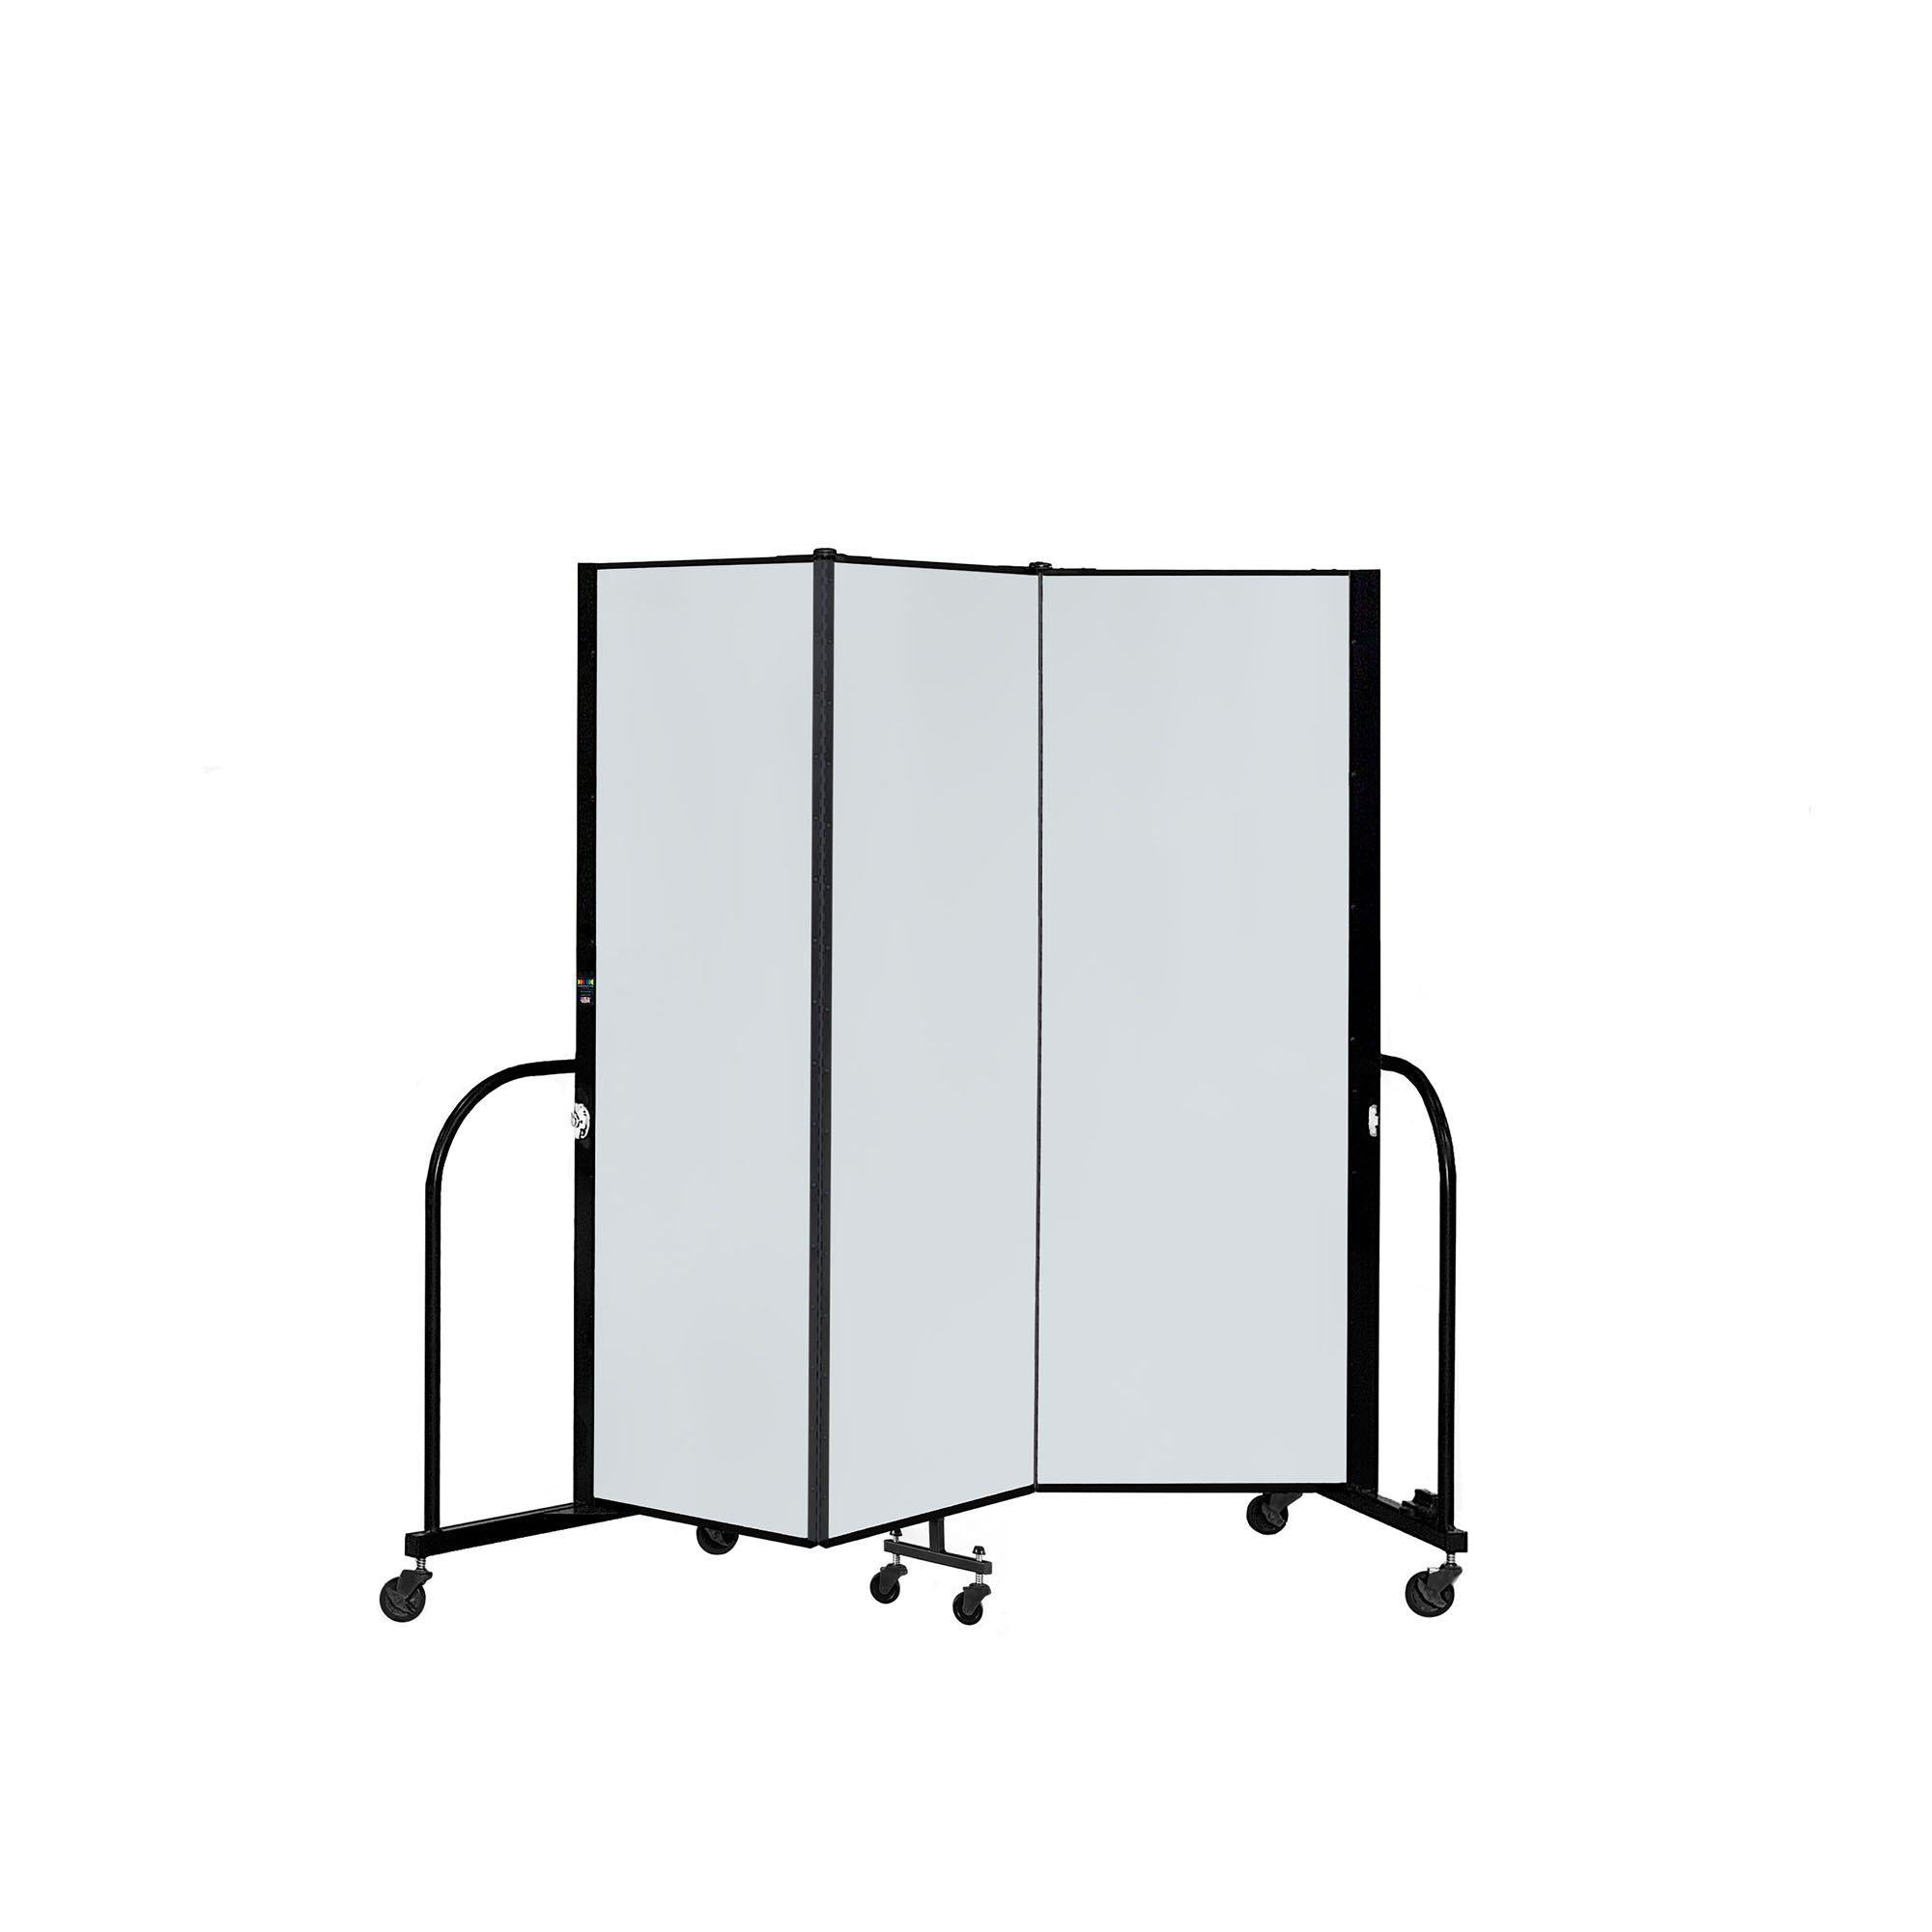 "Screenflex Dry Erase/Tackable Dividers, 6 Ft. High-Partitions & Display Panels-3 Panels (5' 9"" L)-"